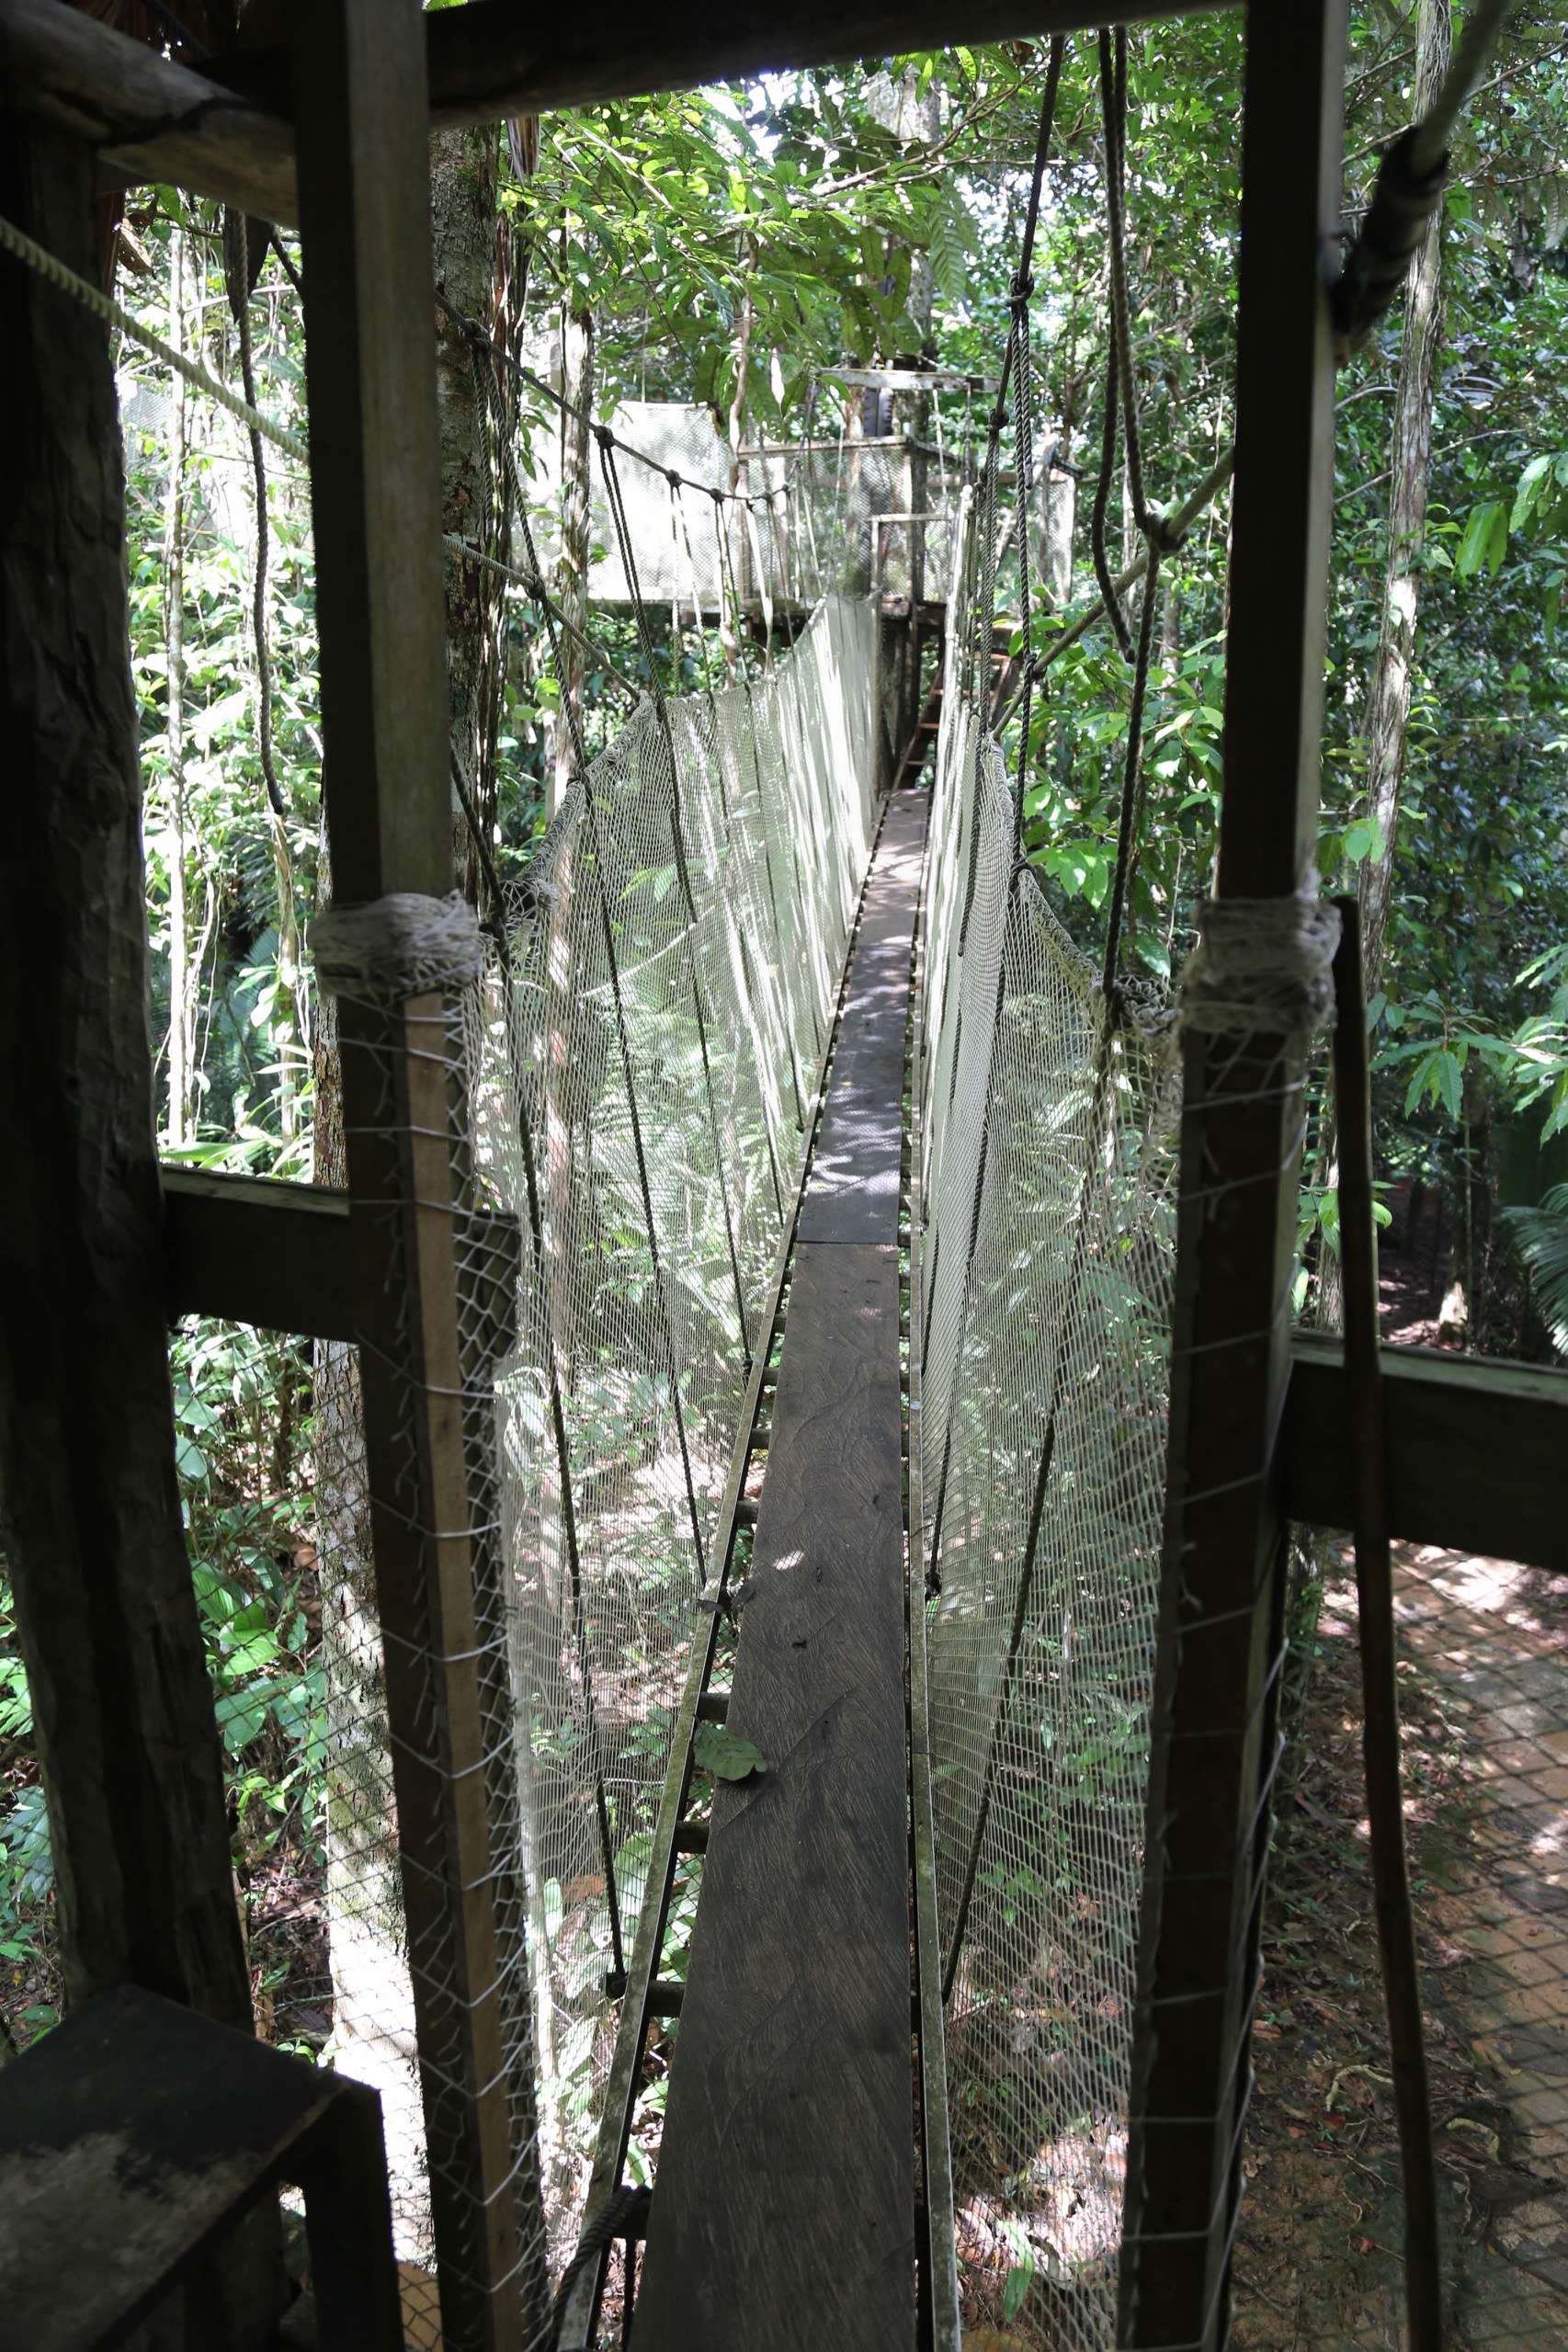 If you're okay with heights and a bit of swaying under your feet, it's easy to traverse the canopy walkway.